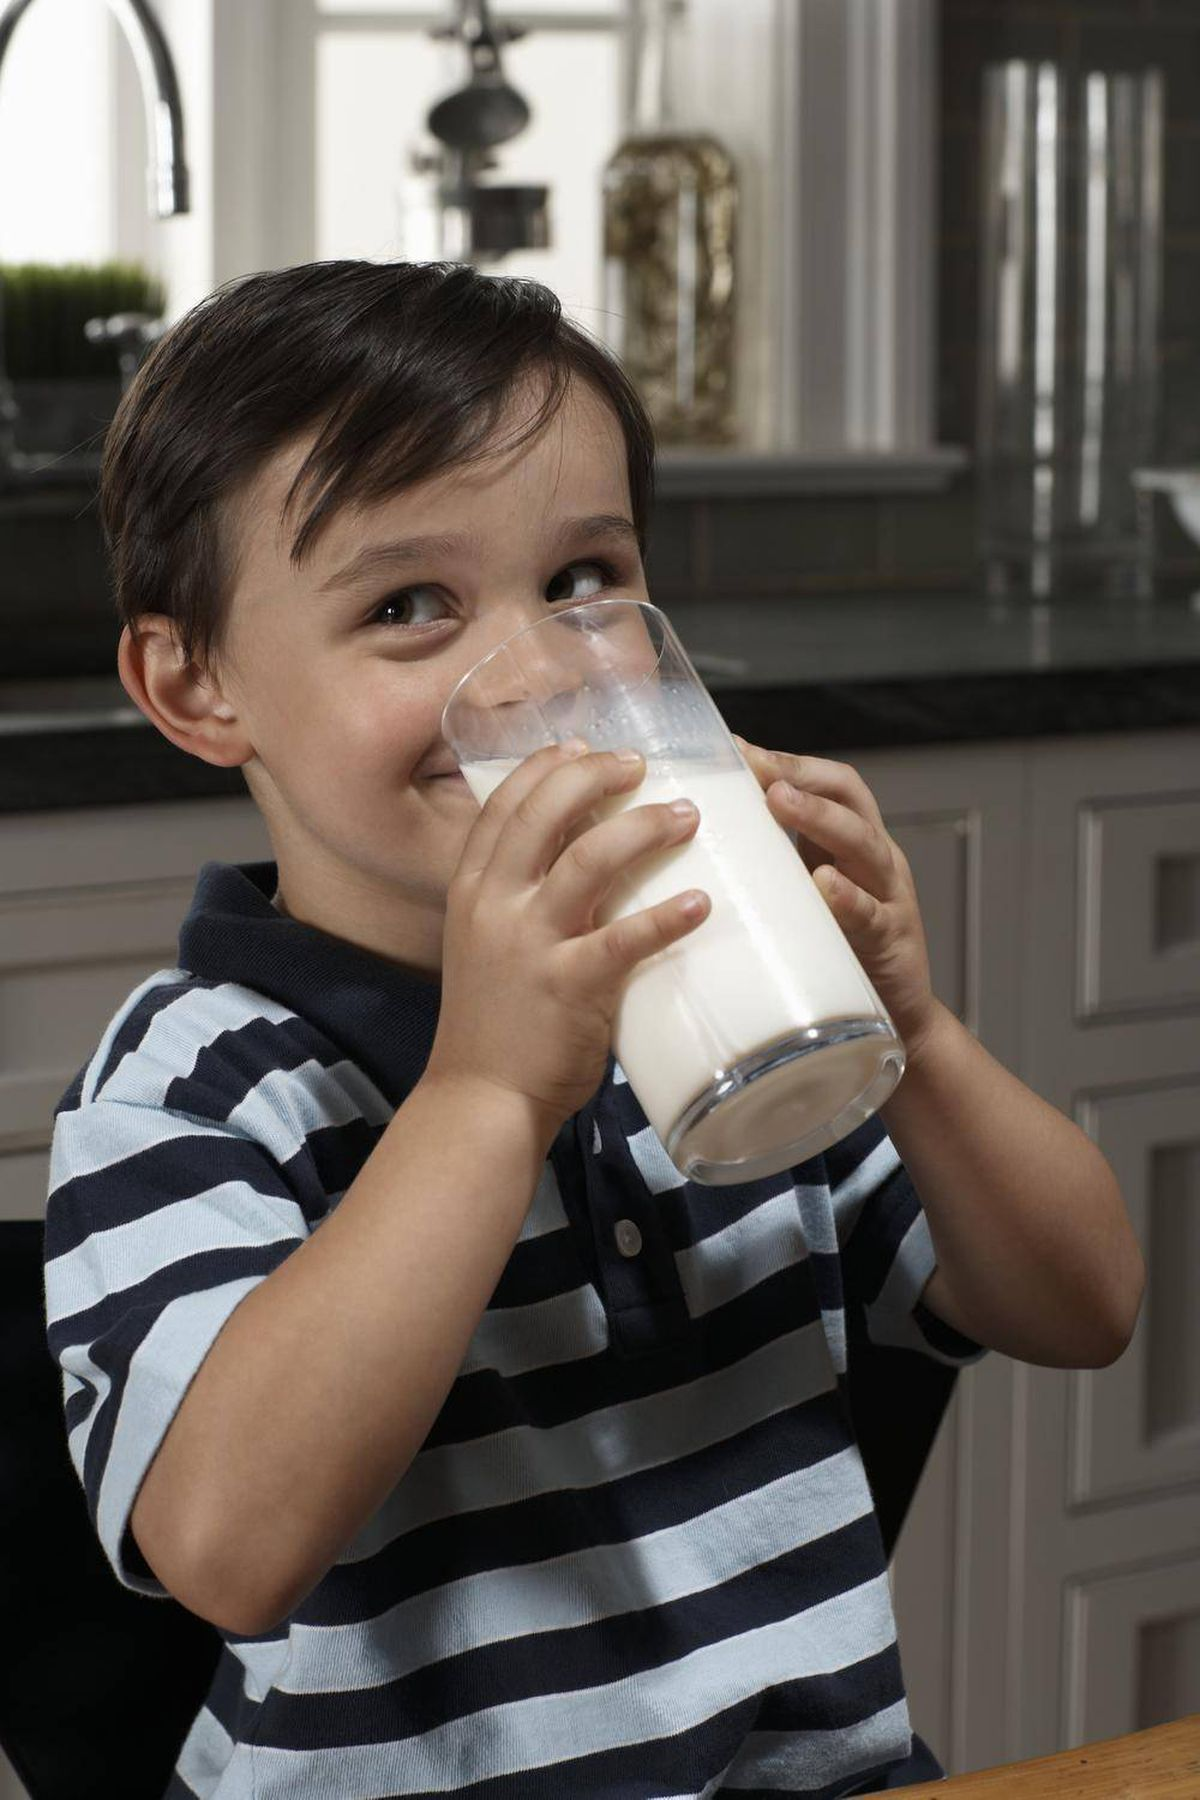 Is too much milk bad for my kid? - The Globe and Mail